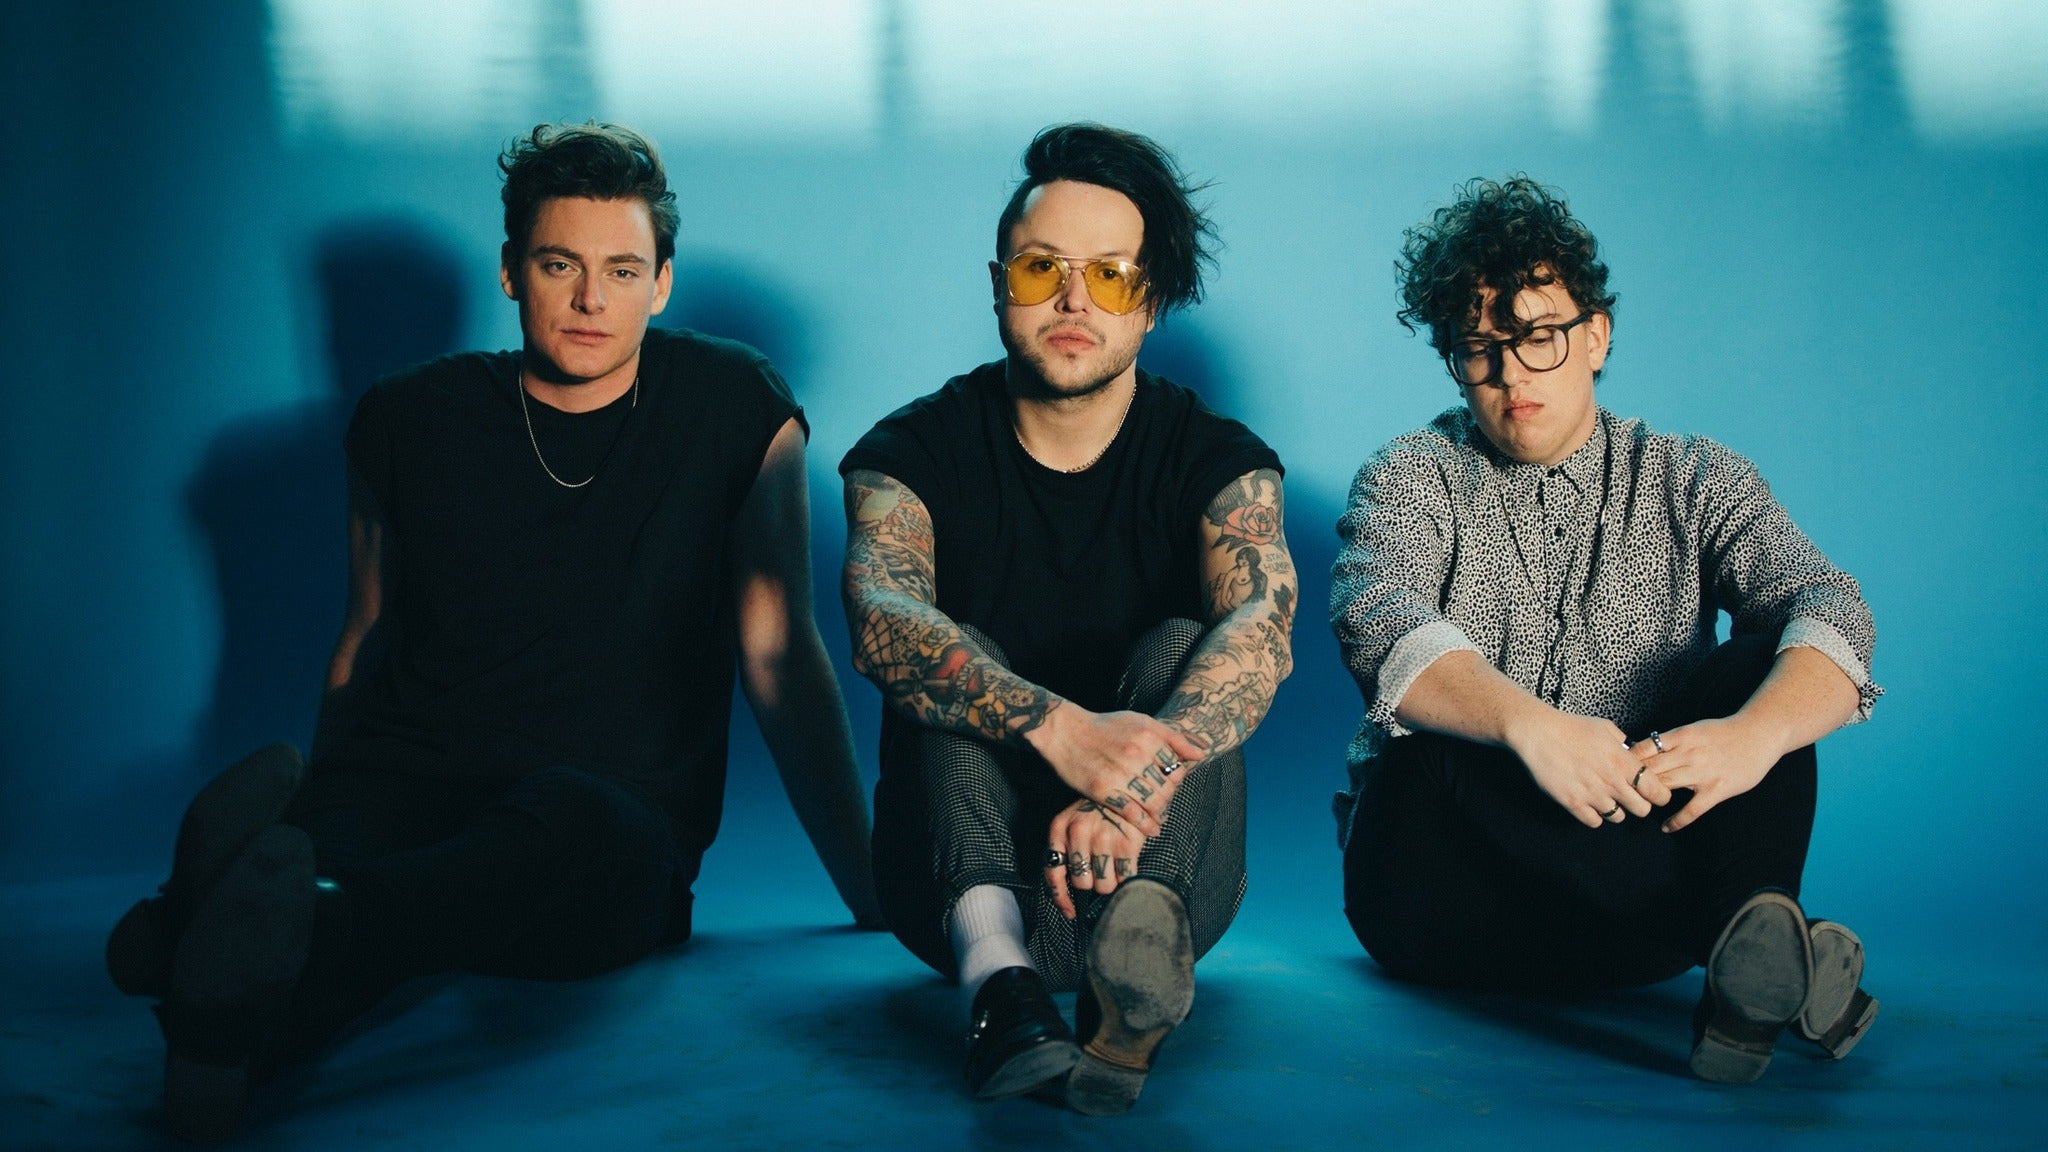 OTW Presents: lovelytheband - the finding it hard to smile tour